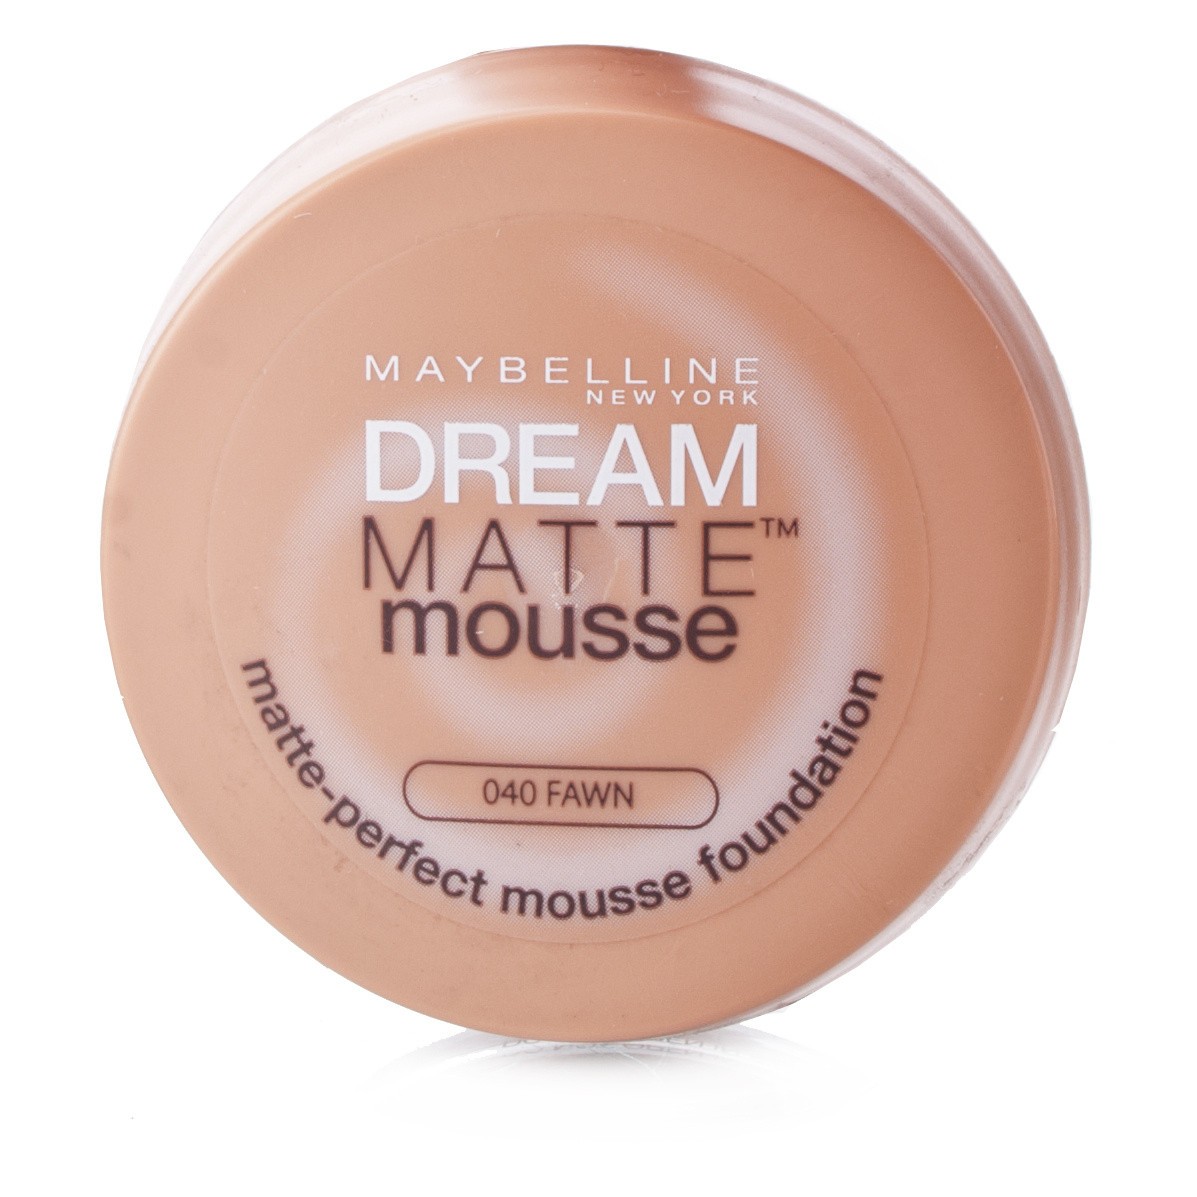 Maybelline Dream Matte Mousse Foundation Fawn